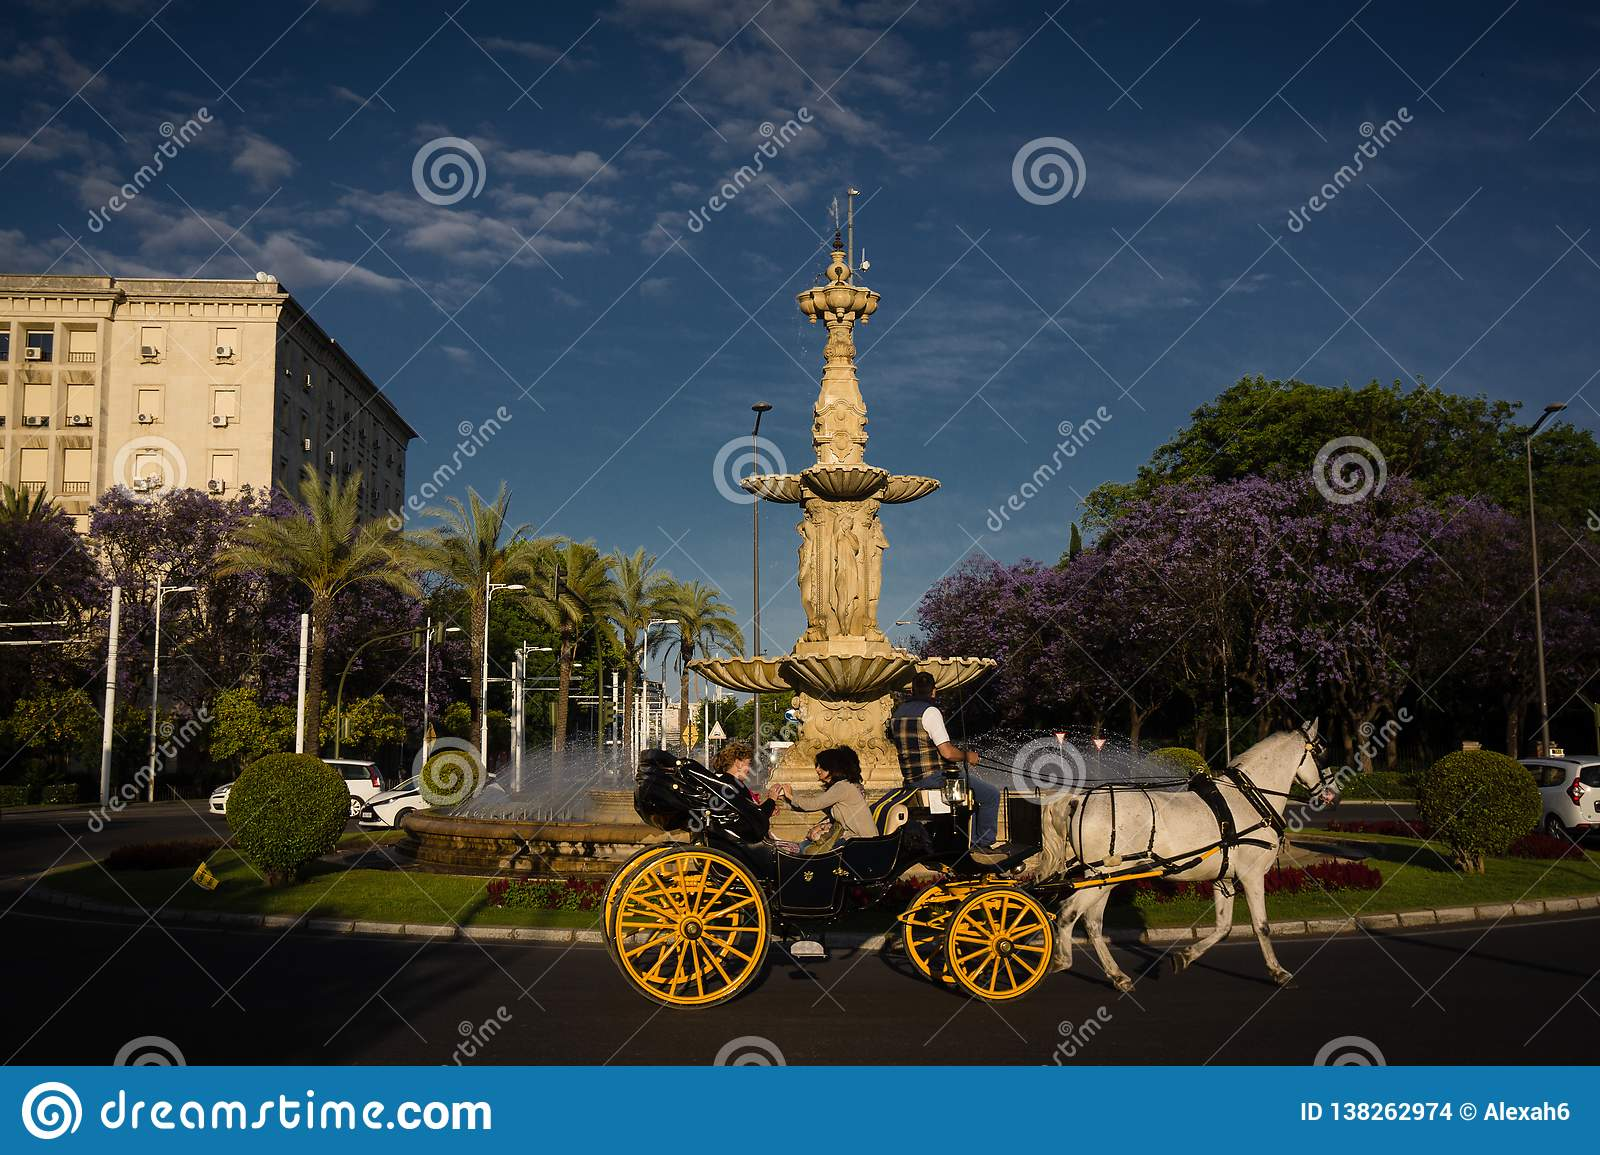 Spain Andalucia horse-drawn carriage in Seville traffic